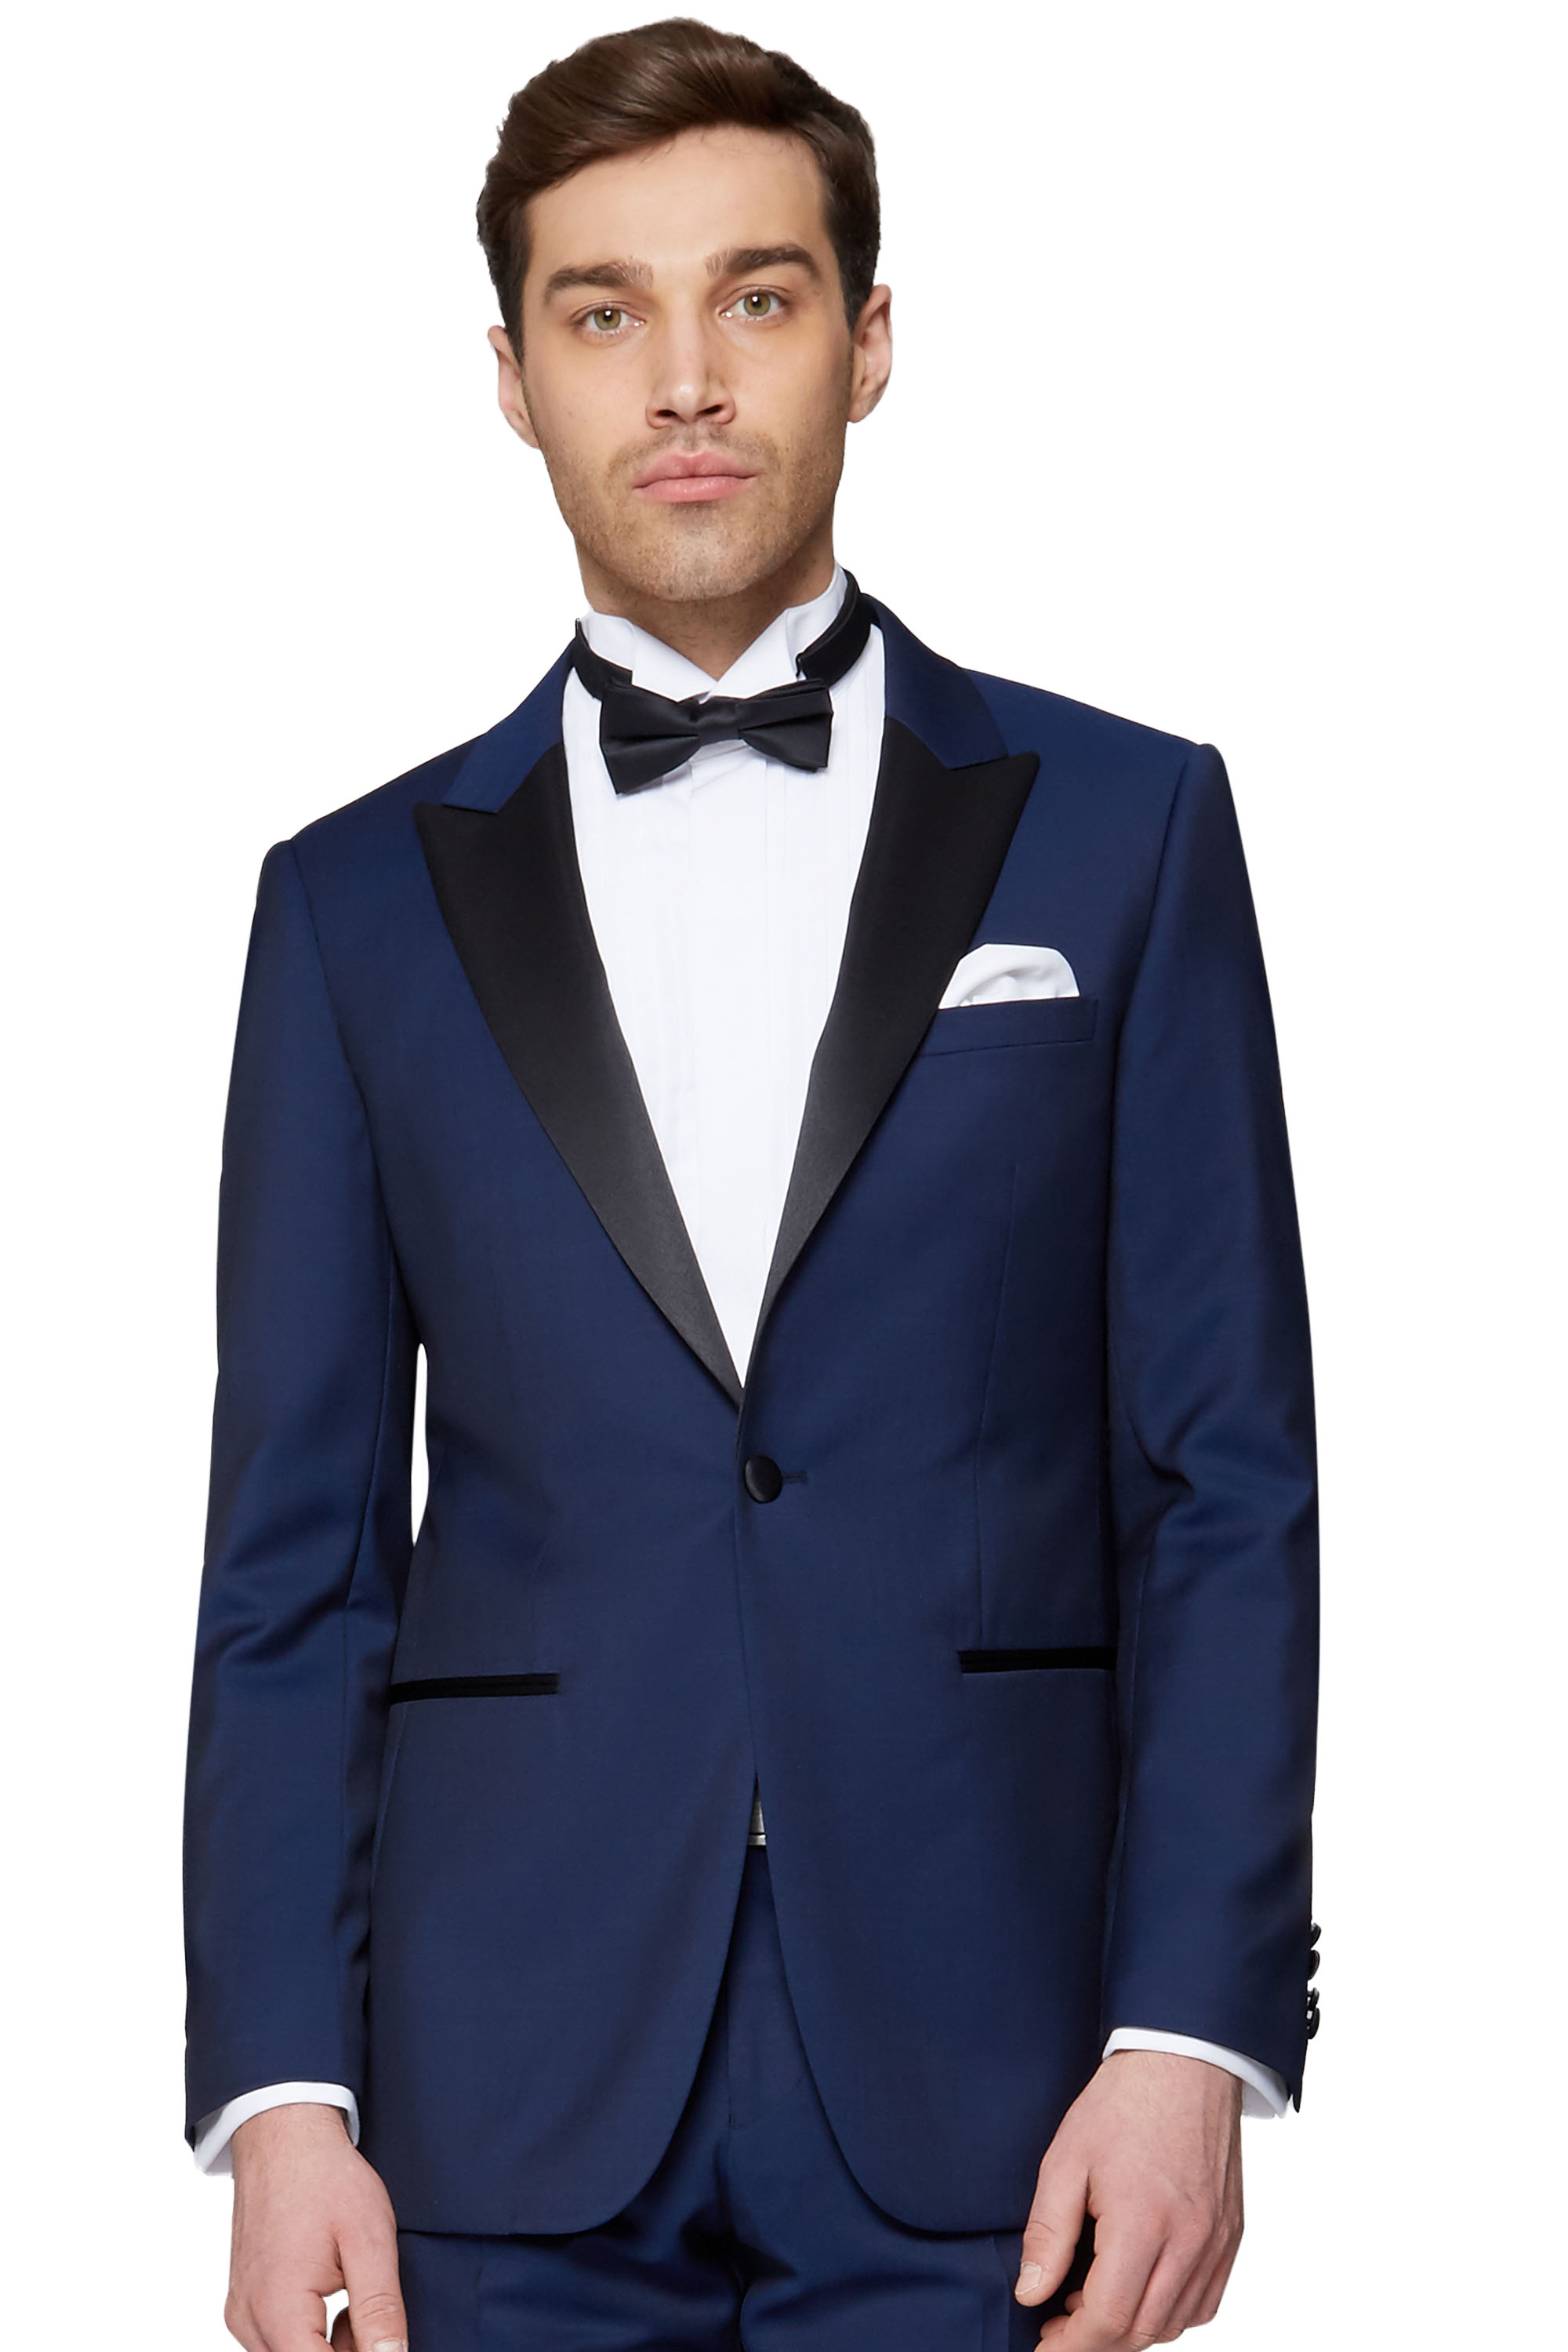 Free shipping and returns on Men's Blue Tuxedo & Formal Occasion at loadingbassqz.cf